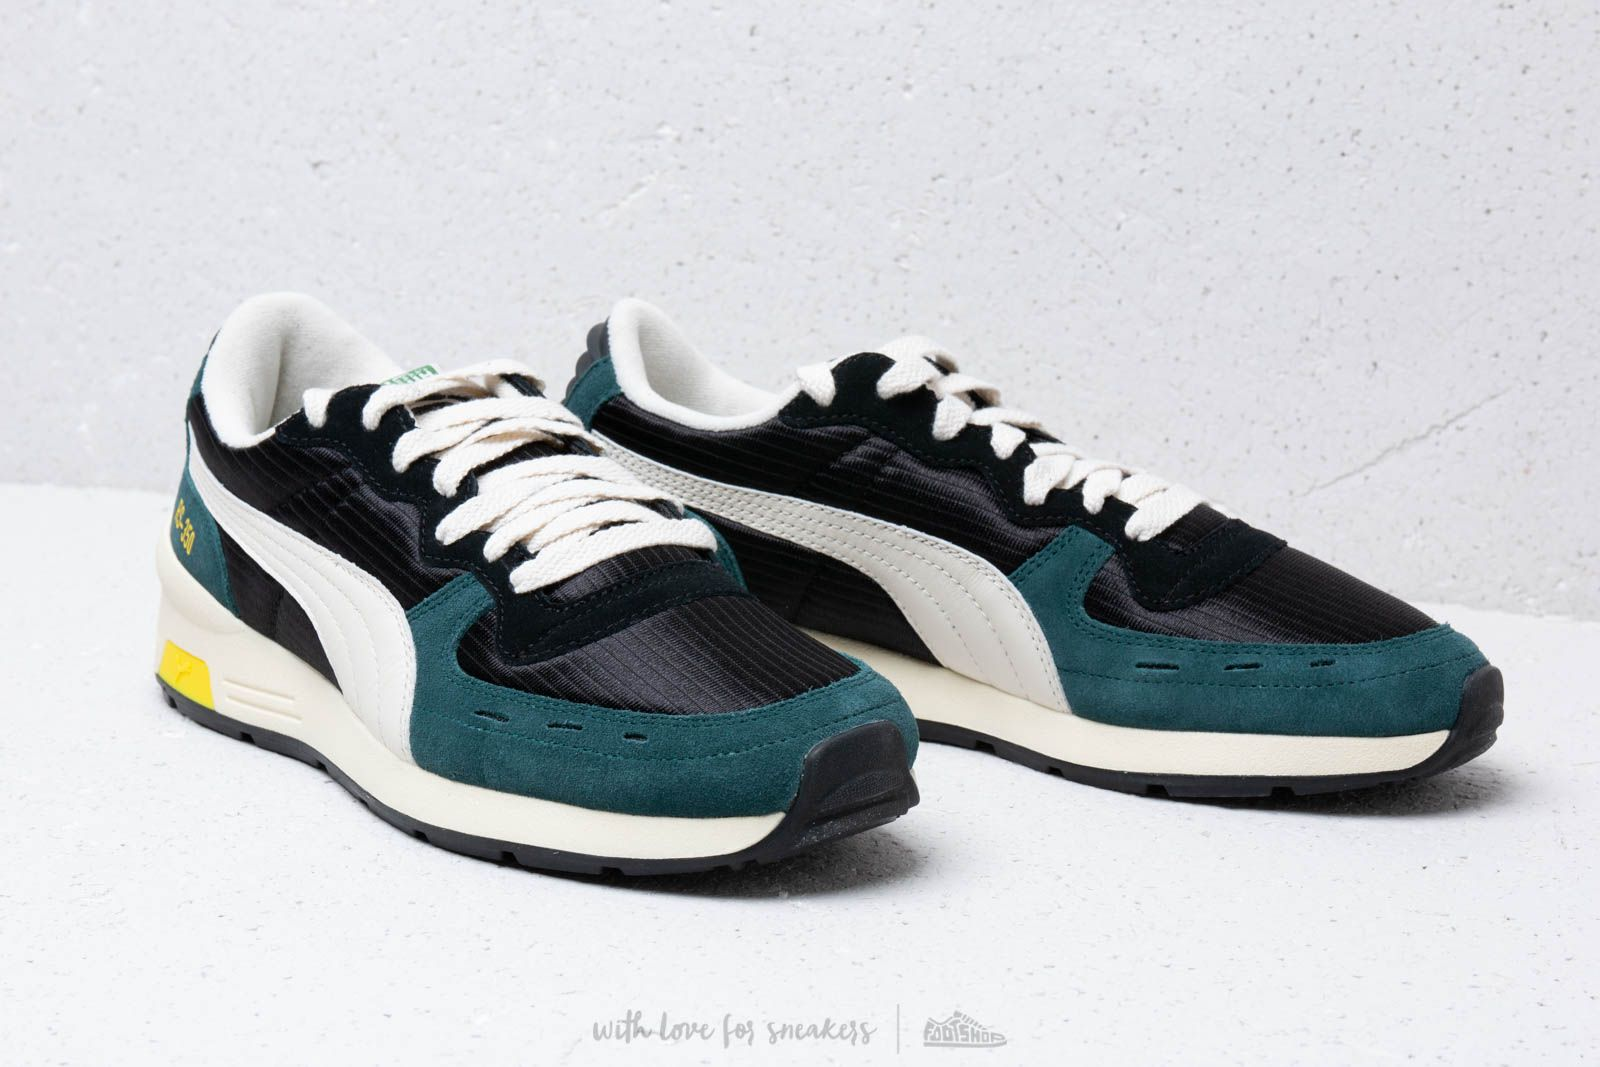 Premisa Empleado canto  Men's shoes Puma RS-350 OG Puma Black/ Ponderosa Pine | Footshop